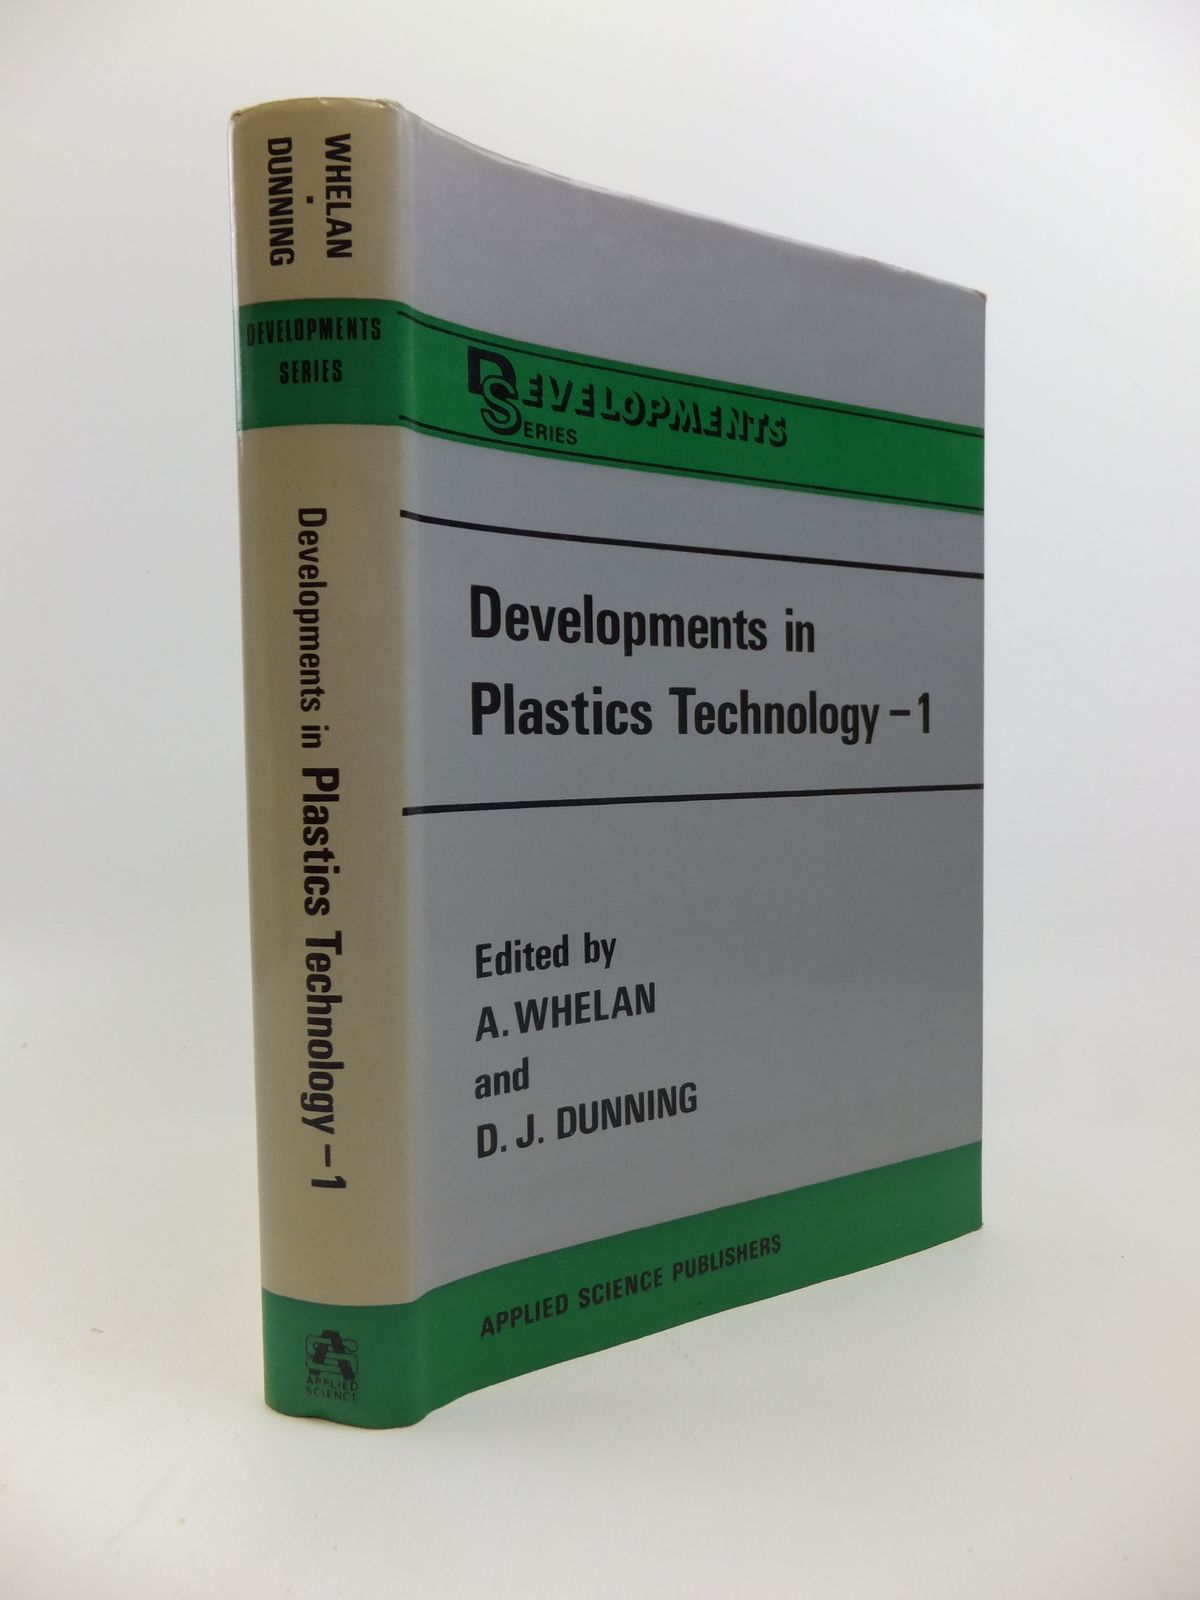 Photo of DEVELOPMENTS IN PLASTICS TECHNOLOGY 1 EXTRUSION written by Whelan, A. Dunning, D.J. published by Applied Science Publishers Ltd. (STOCK CODE: 1208245)  for sale by Stella & Rose's Books